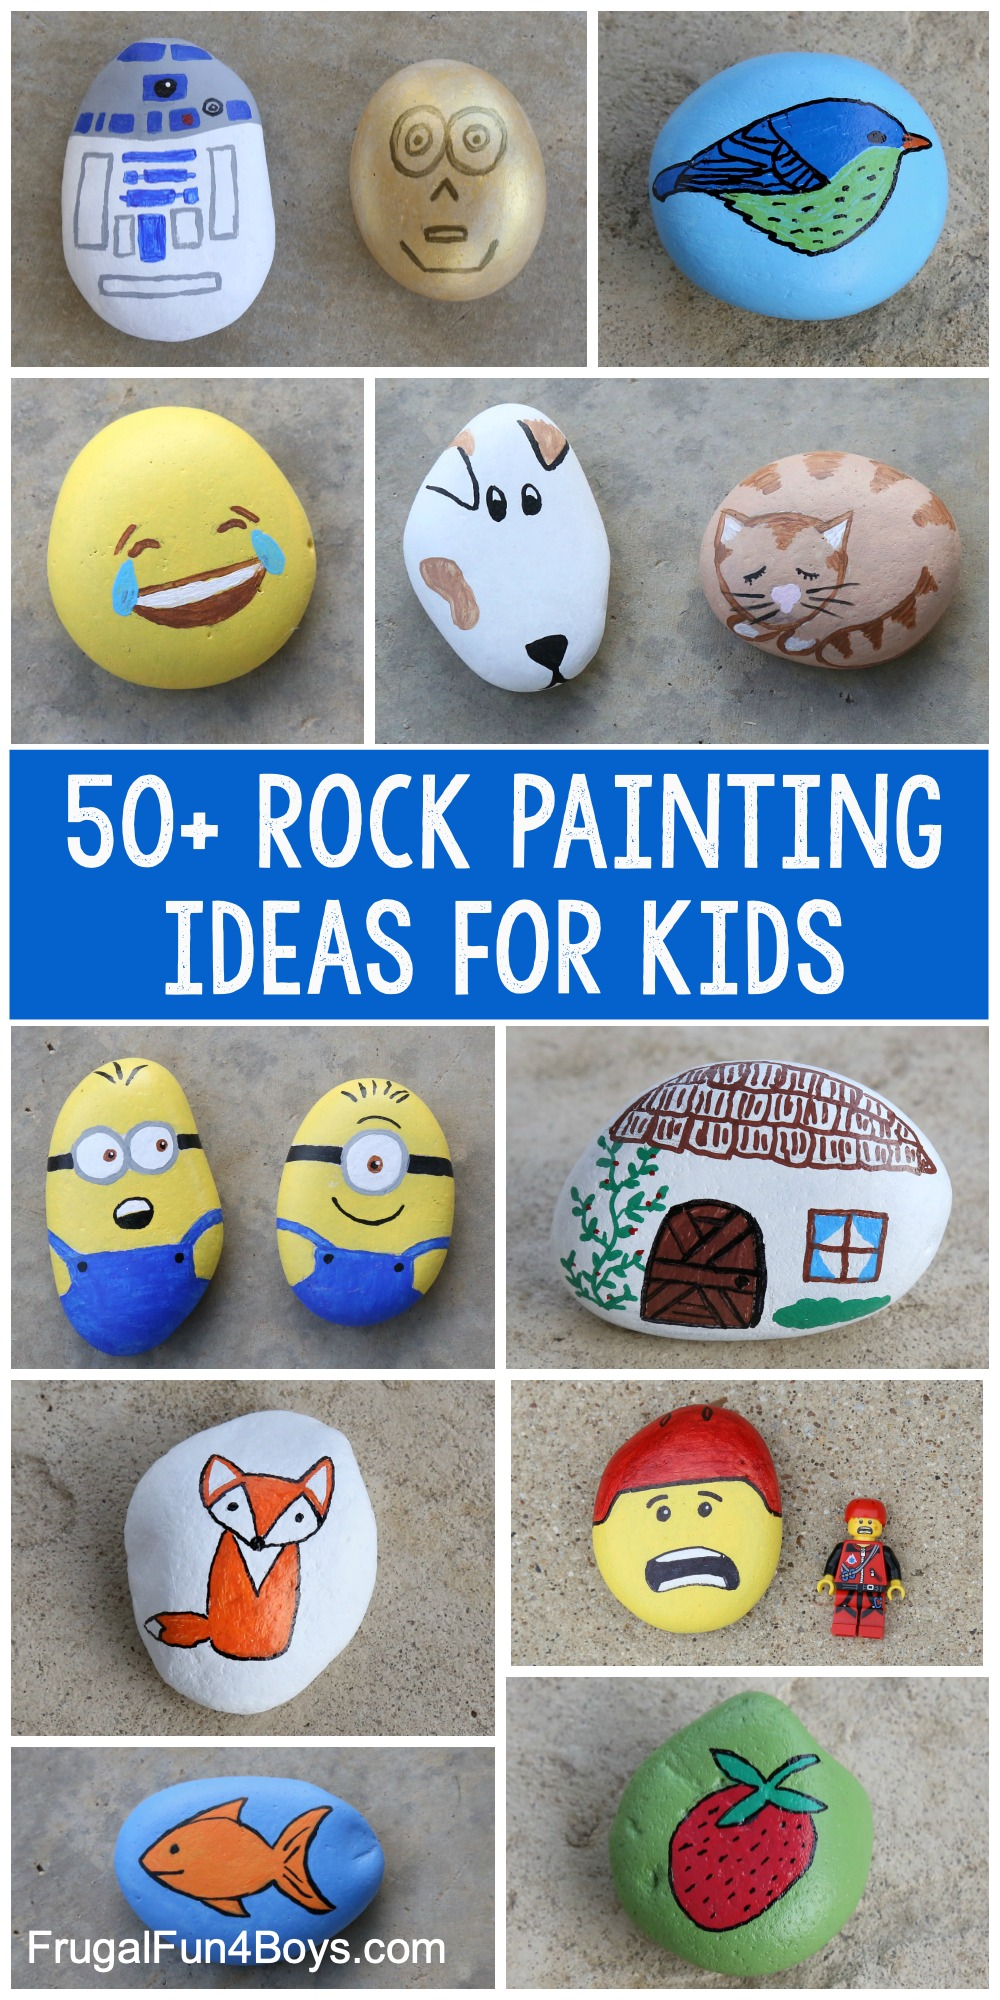 50+ Rock Painting Ideas for Kids